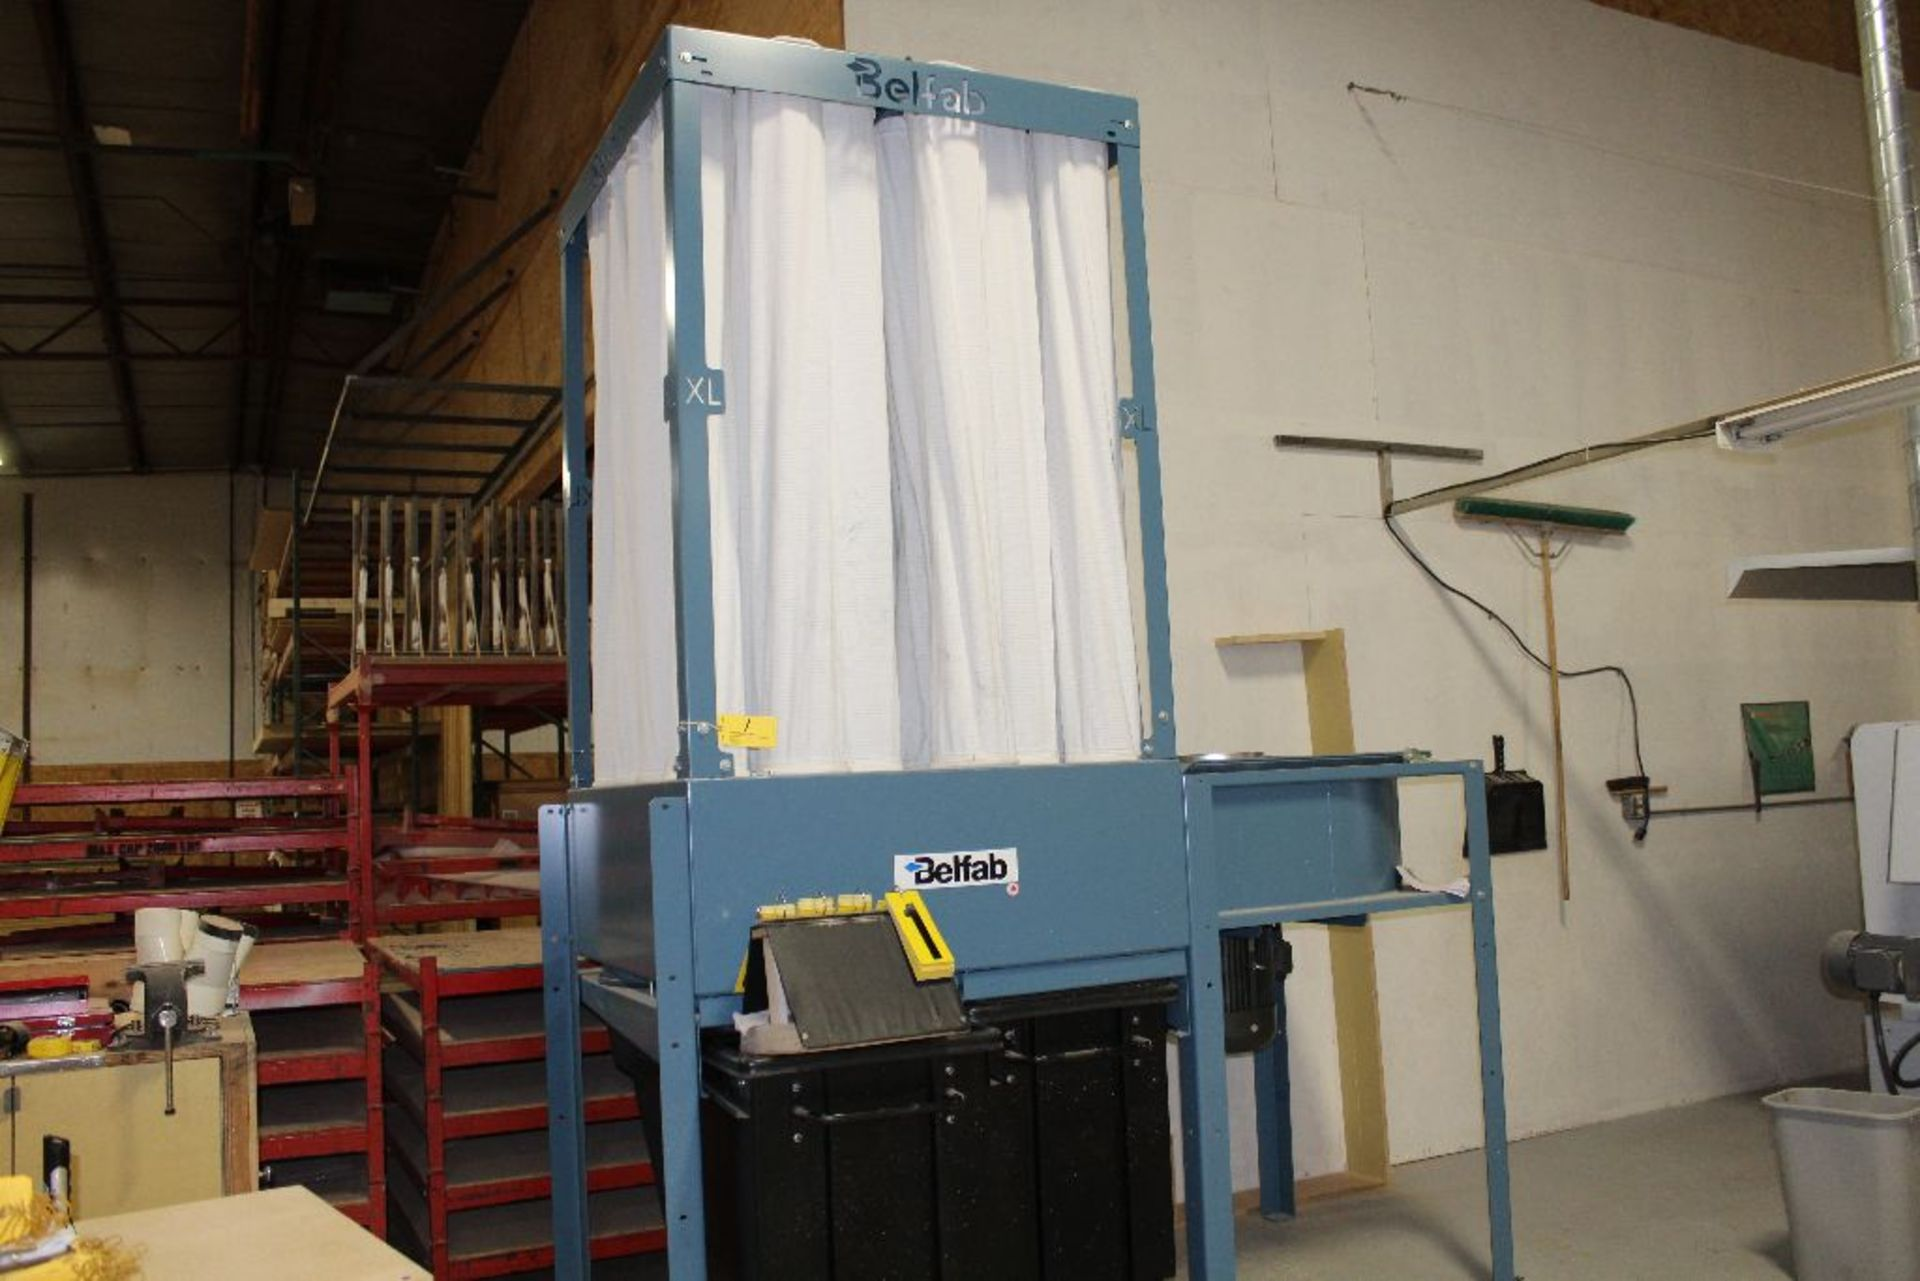 Lot 001 - BelFab dust collector, model BLE100, sn 0-261-02-2976, 10 hp.